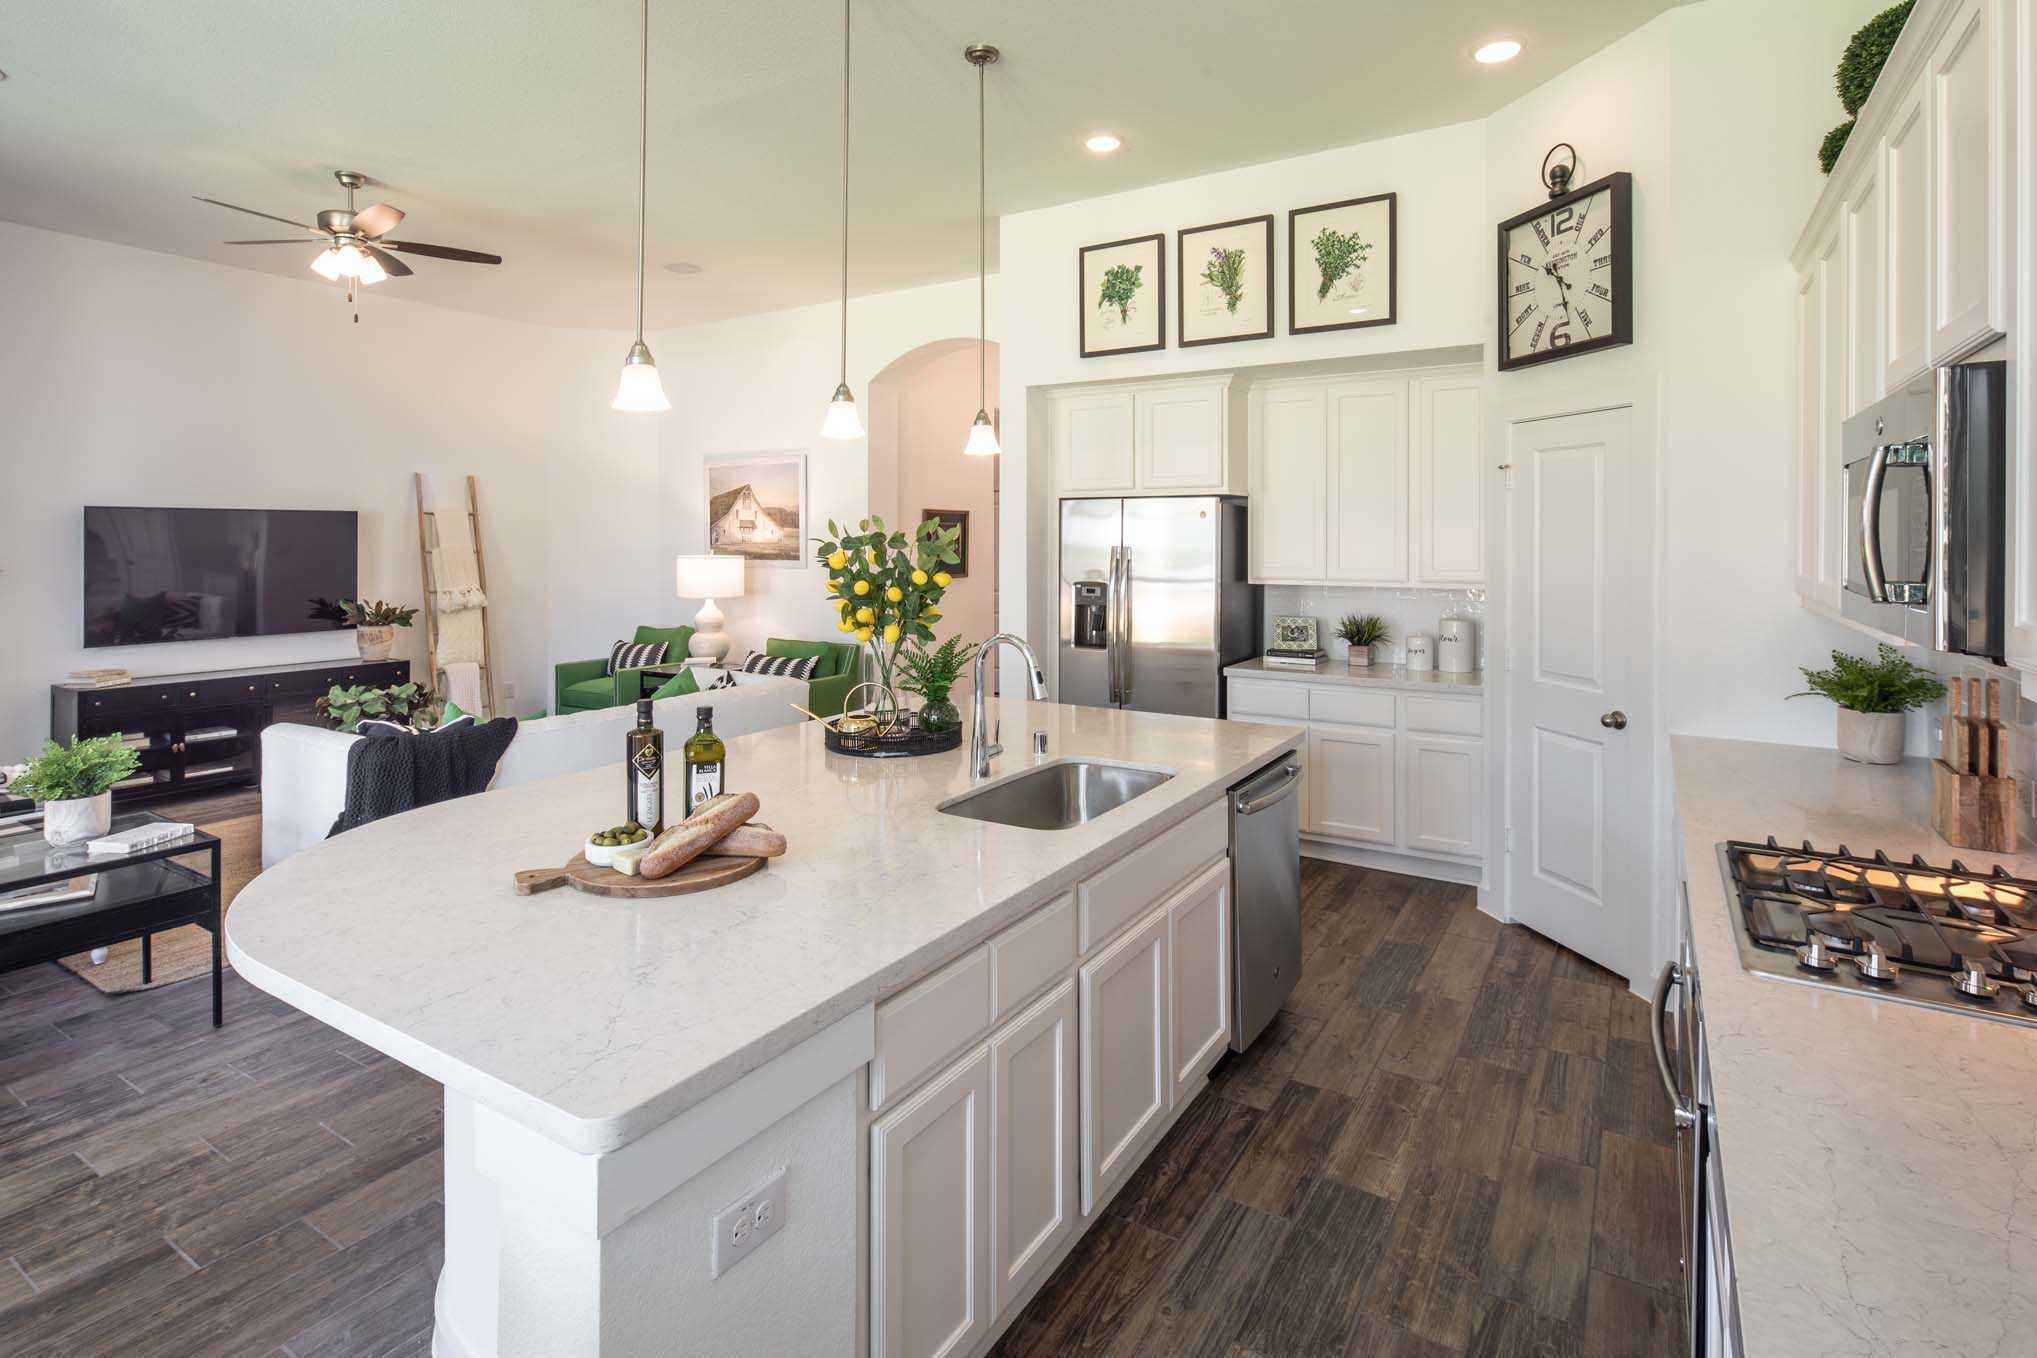 Kitchen featured in the Plan Amberley By Highland Homes in Houston, TX